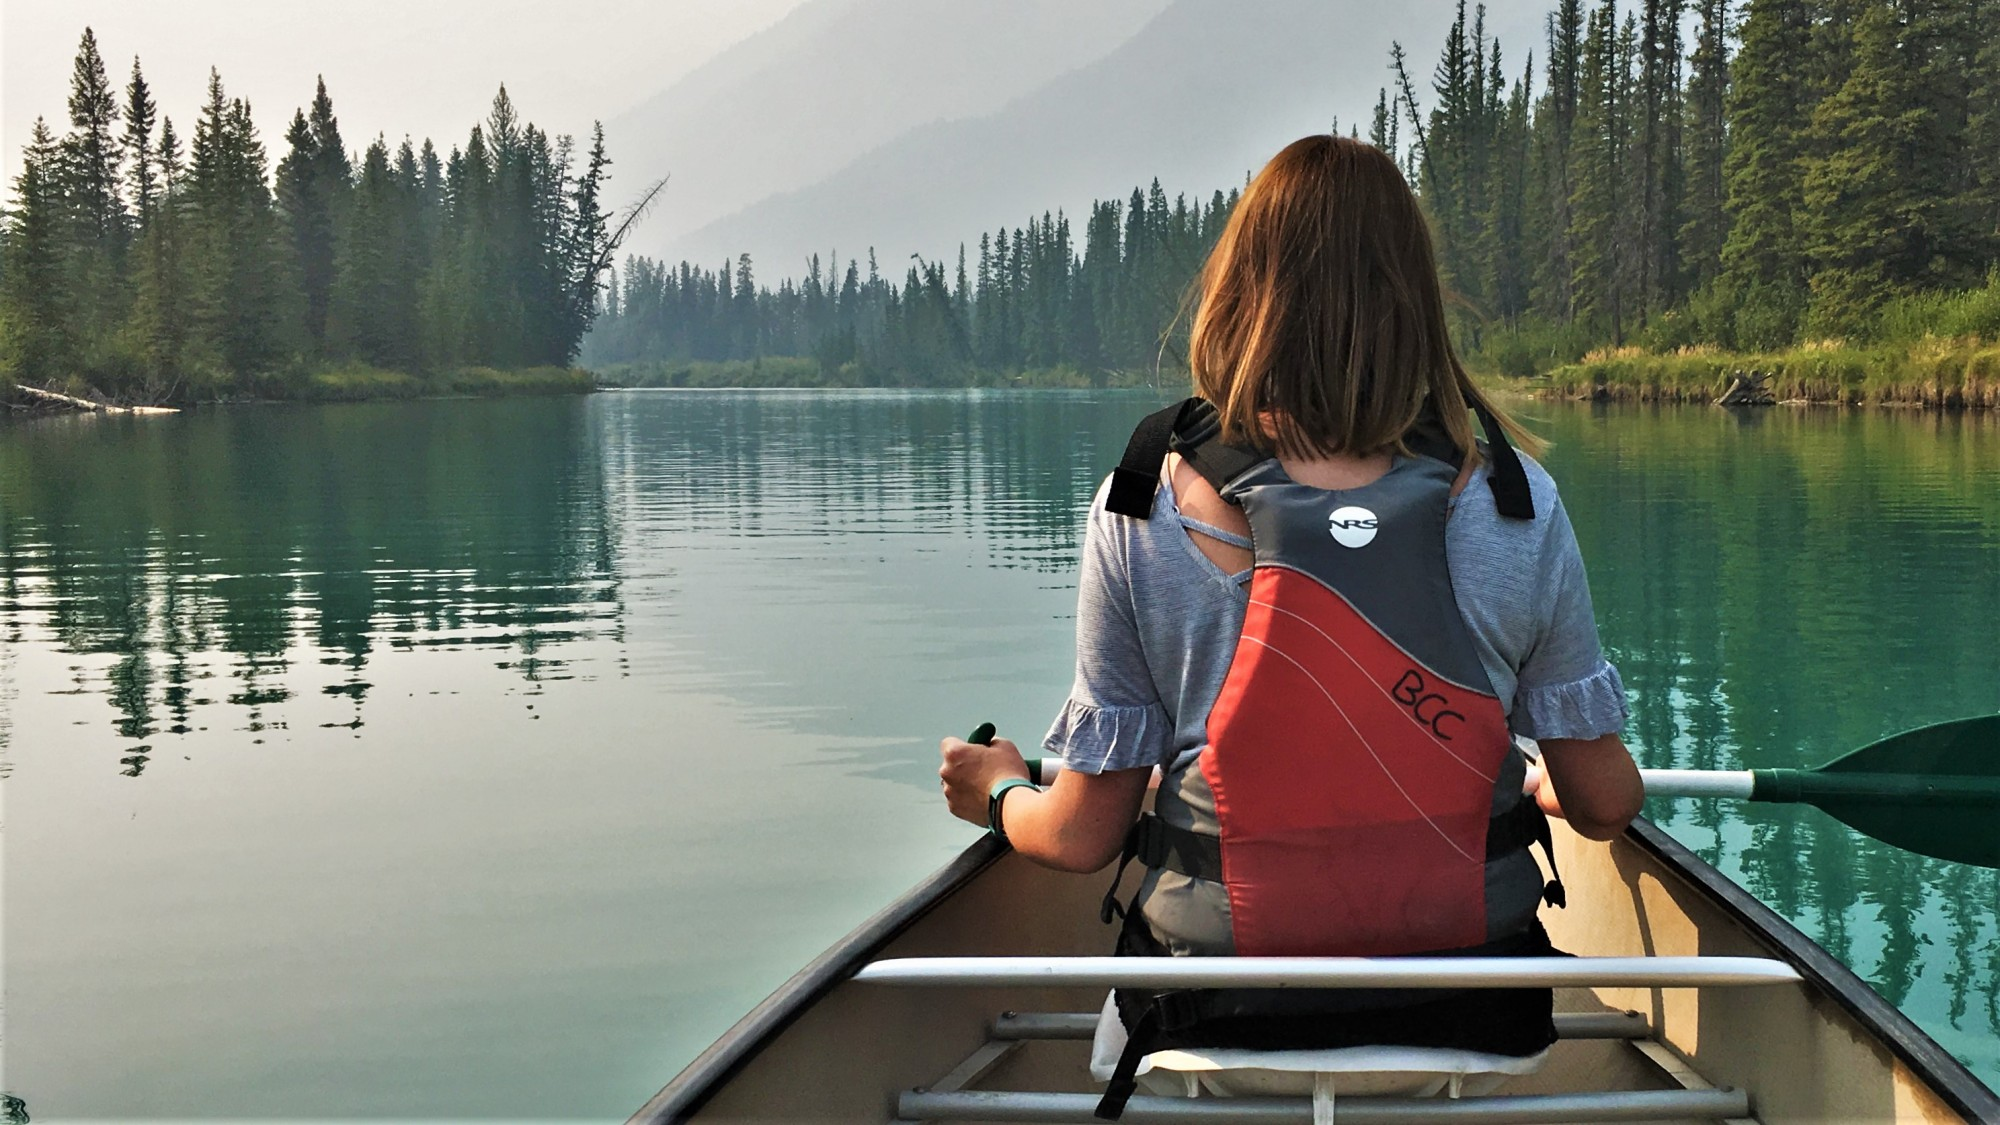 Sarah canoeing the Bow River in Banff